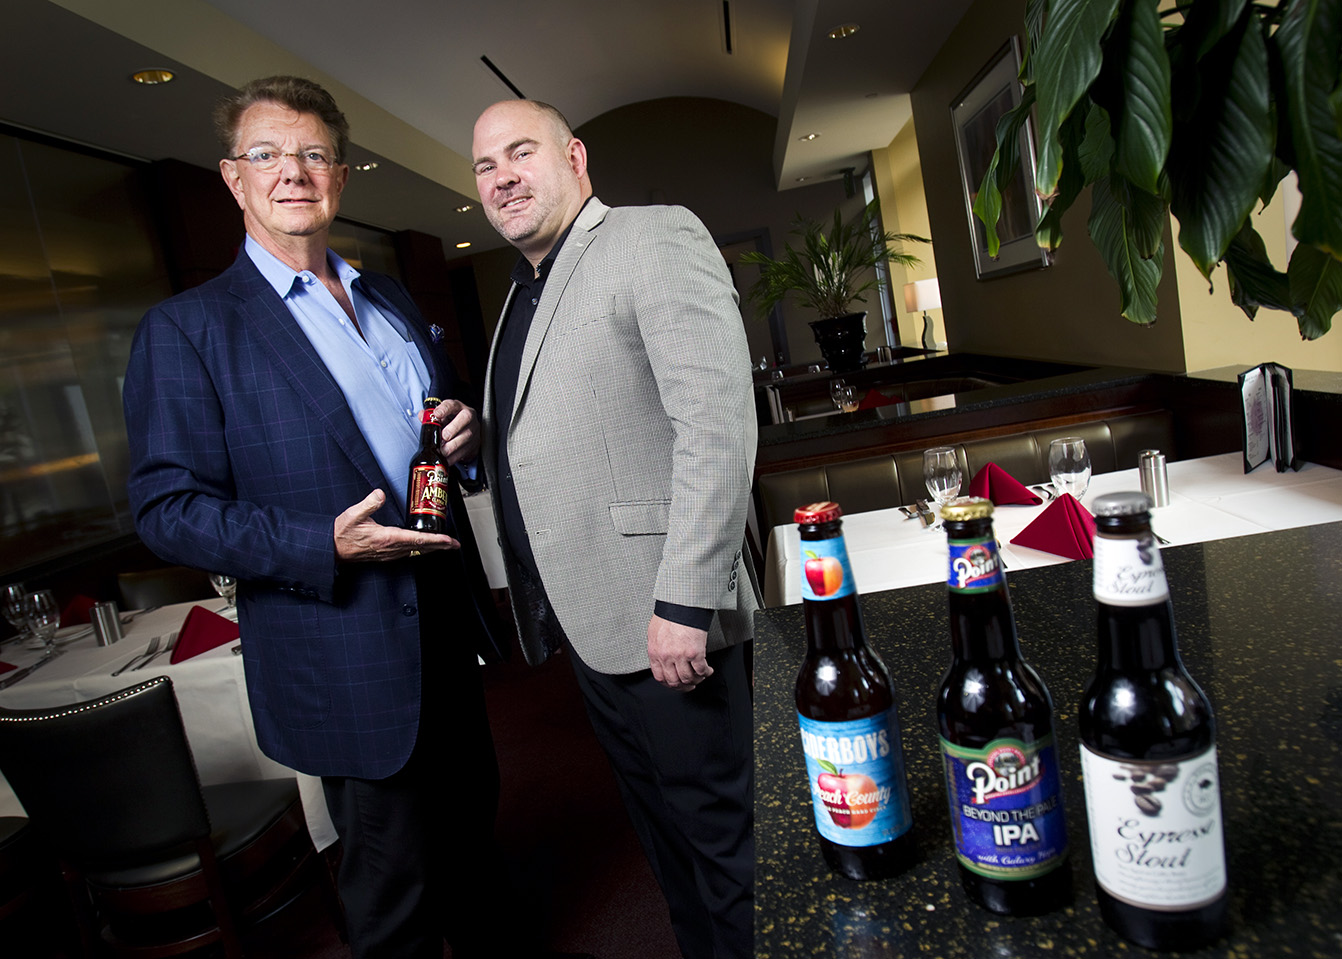 Jim Wiechmann (left), co-owner of Stevens Point Brewery and Brian Ward, owner of Ward's House of Prime,  and pose for a portrait inside Ward's House of Prime on Mason Street in Milwaukee, Wis. on Friday, June 12, 2015. Ward is opening a restaurant on the northwest side that has a licensing agreement with Point Brewery.